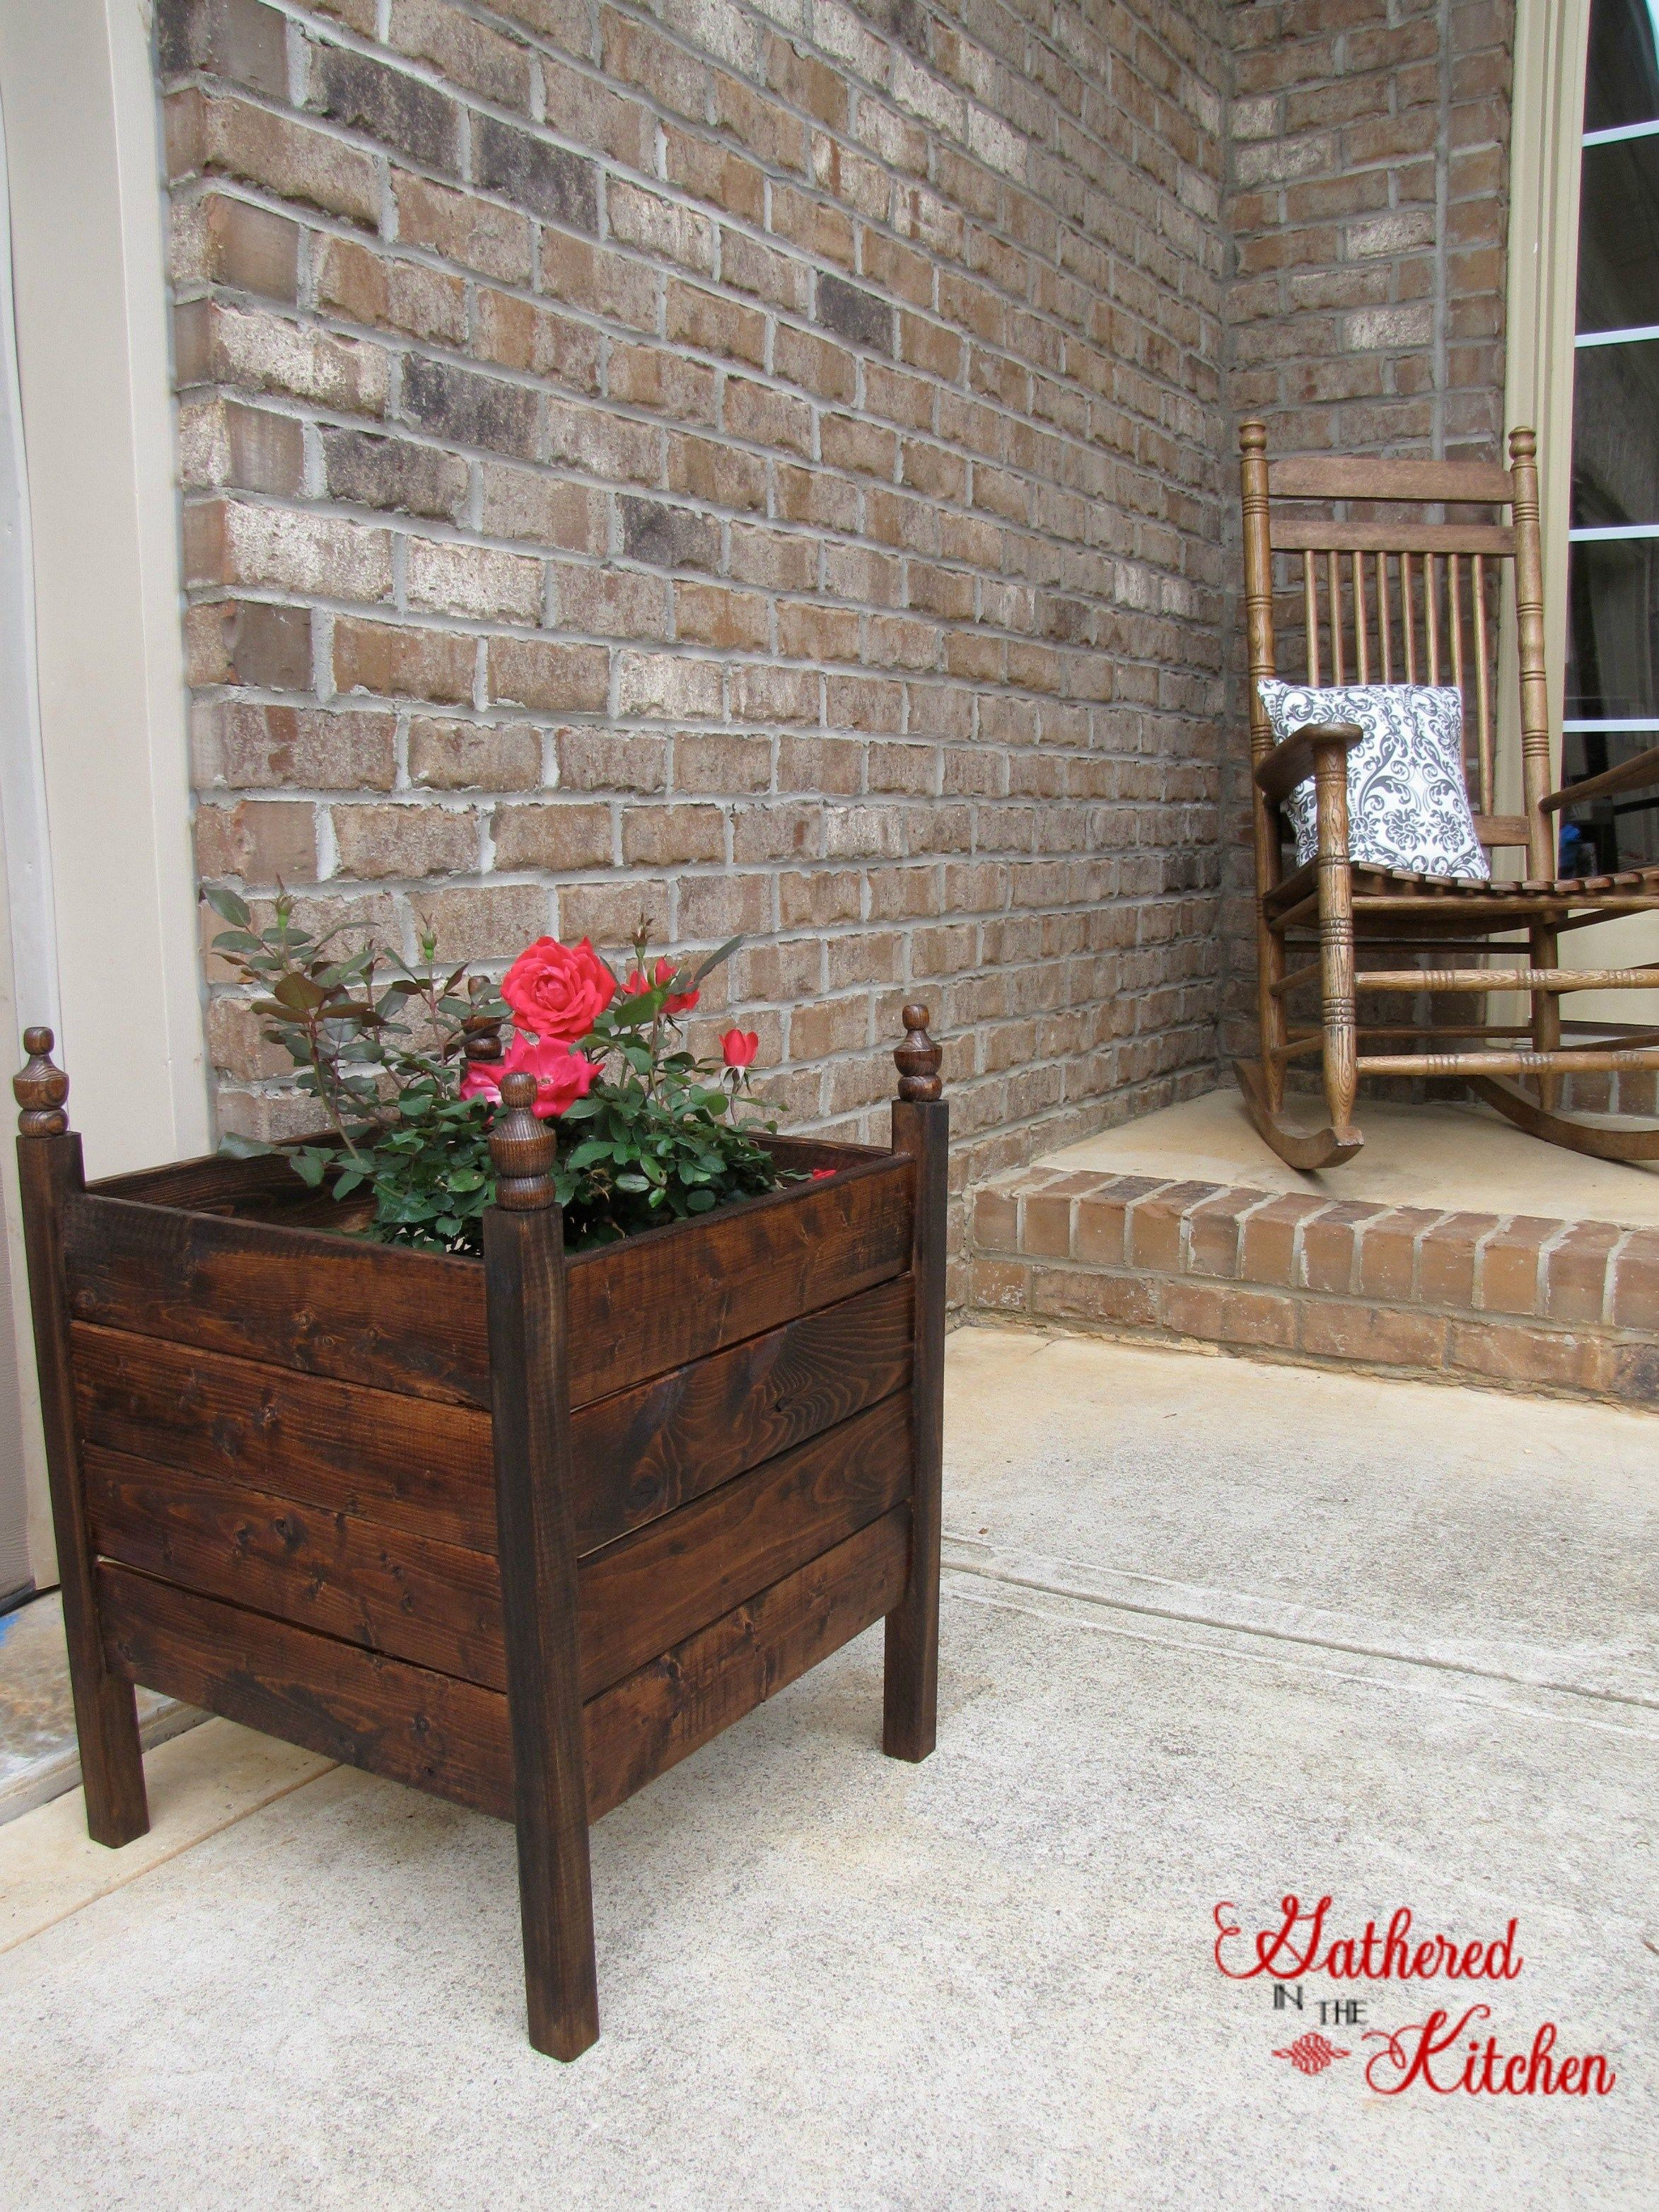 $12 DIY Planter Box - spruce up your curb appeal with easy outdoor gardening planter boxes